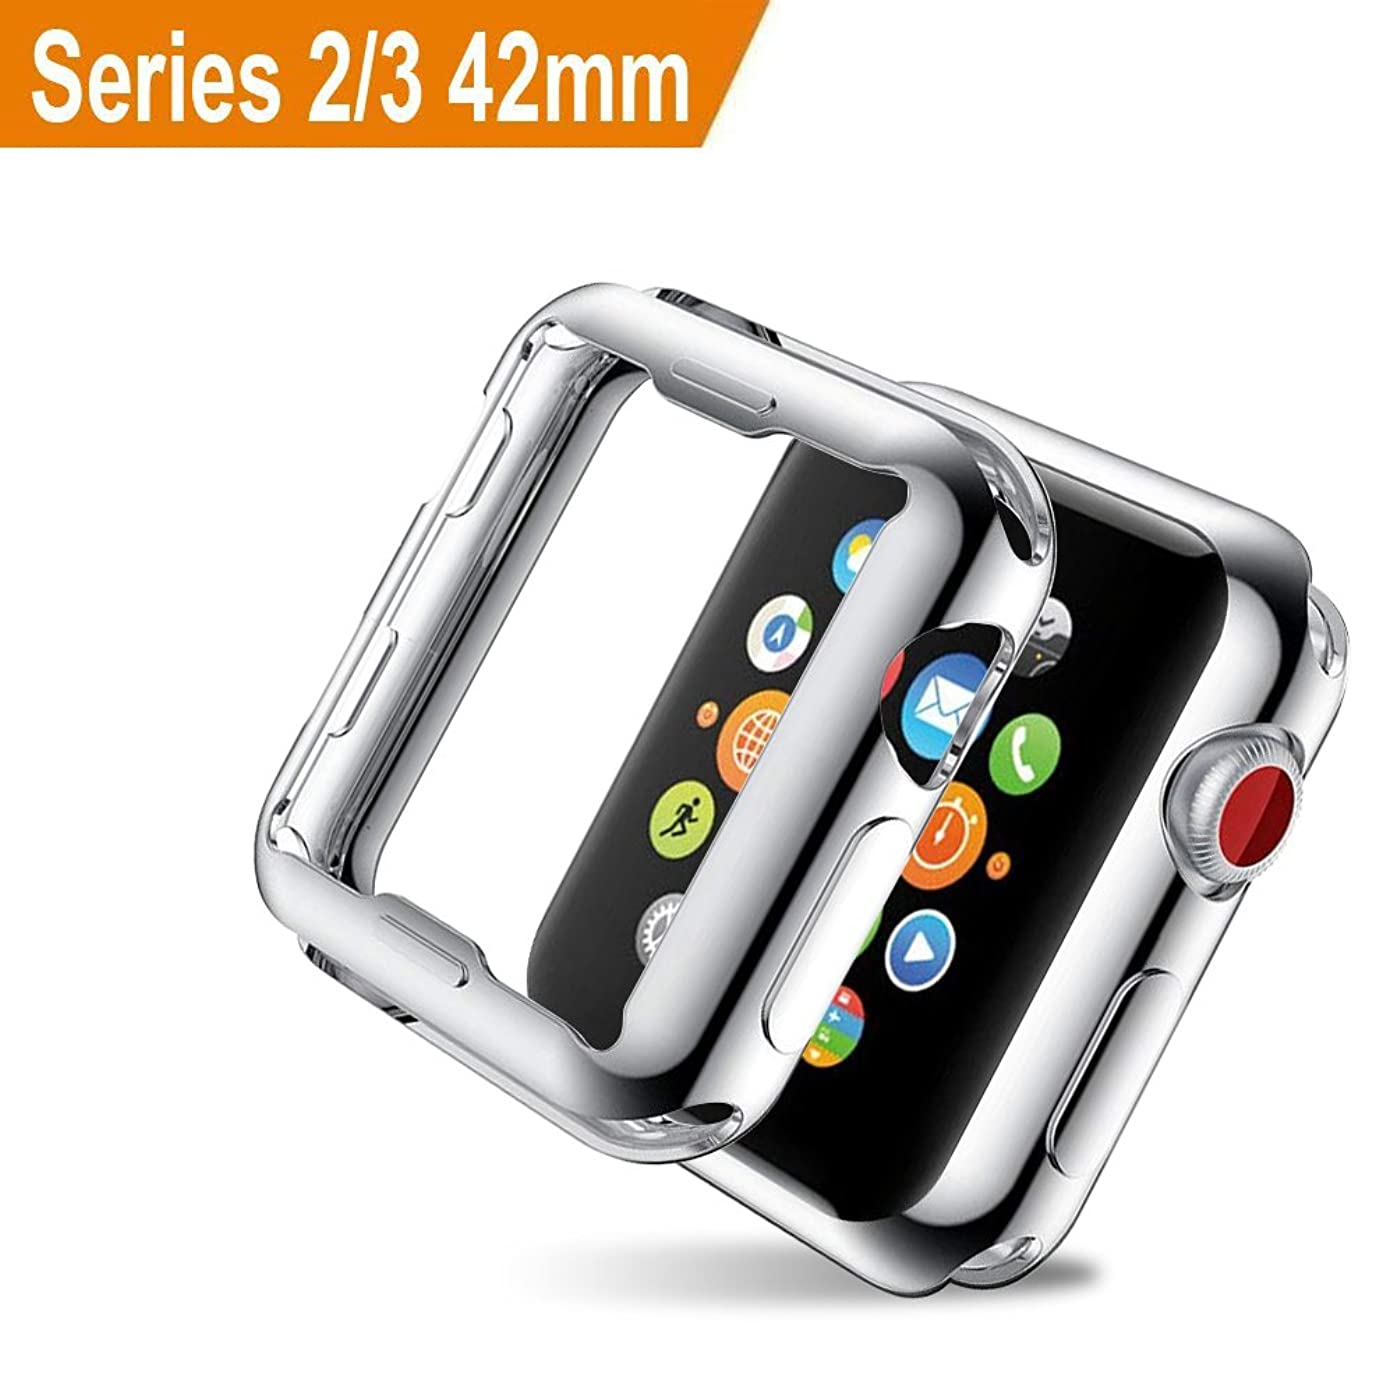 Apple Watch 3 Case 42mm, ZAOX iwatch Buit in Screen Protector Slim Soft TPU Bumper Full Coverage Protective Case HD Clear Ultra-thin Cover for Apple Watch Series 3 and Series 2 (Silver)